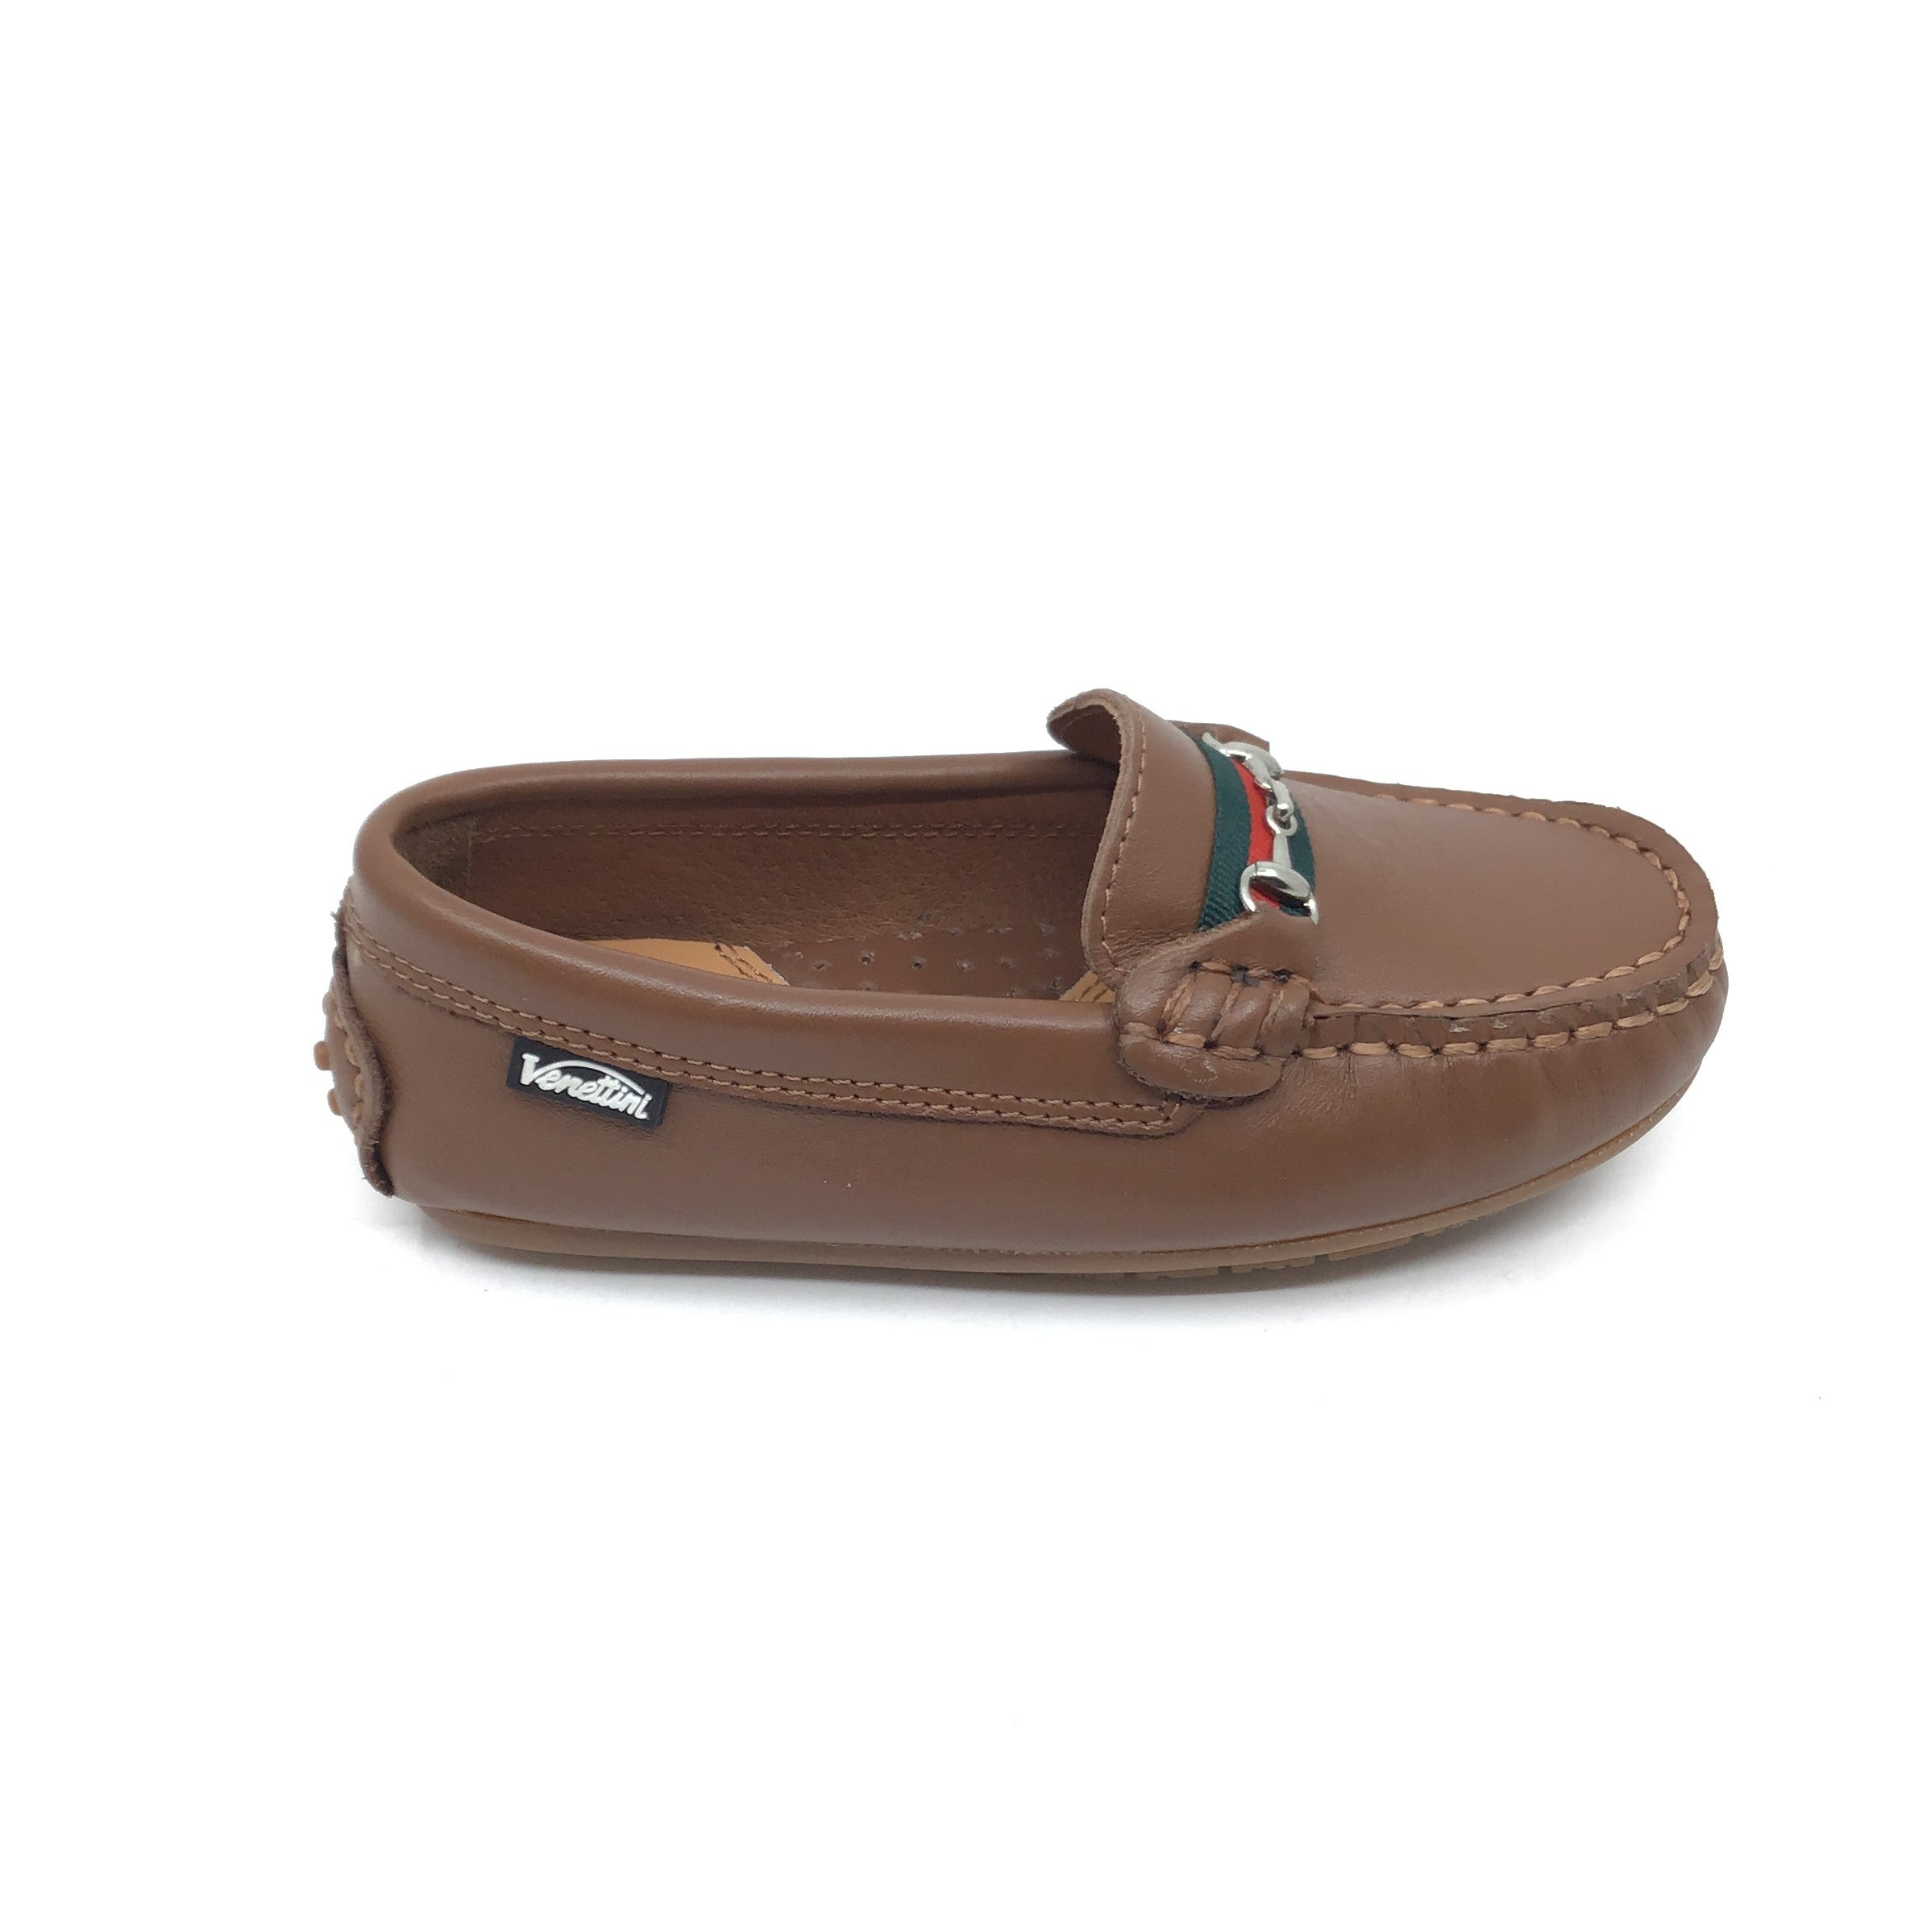 Venettini Brown Loafer with Chain